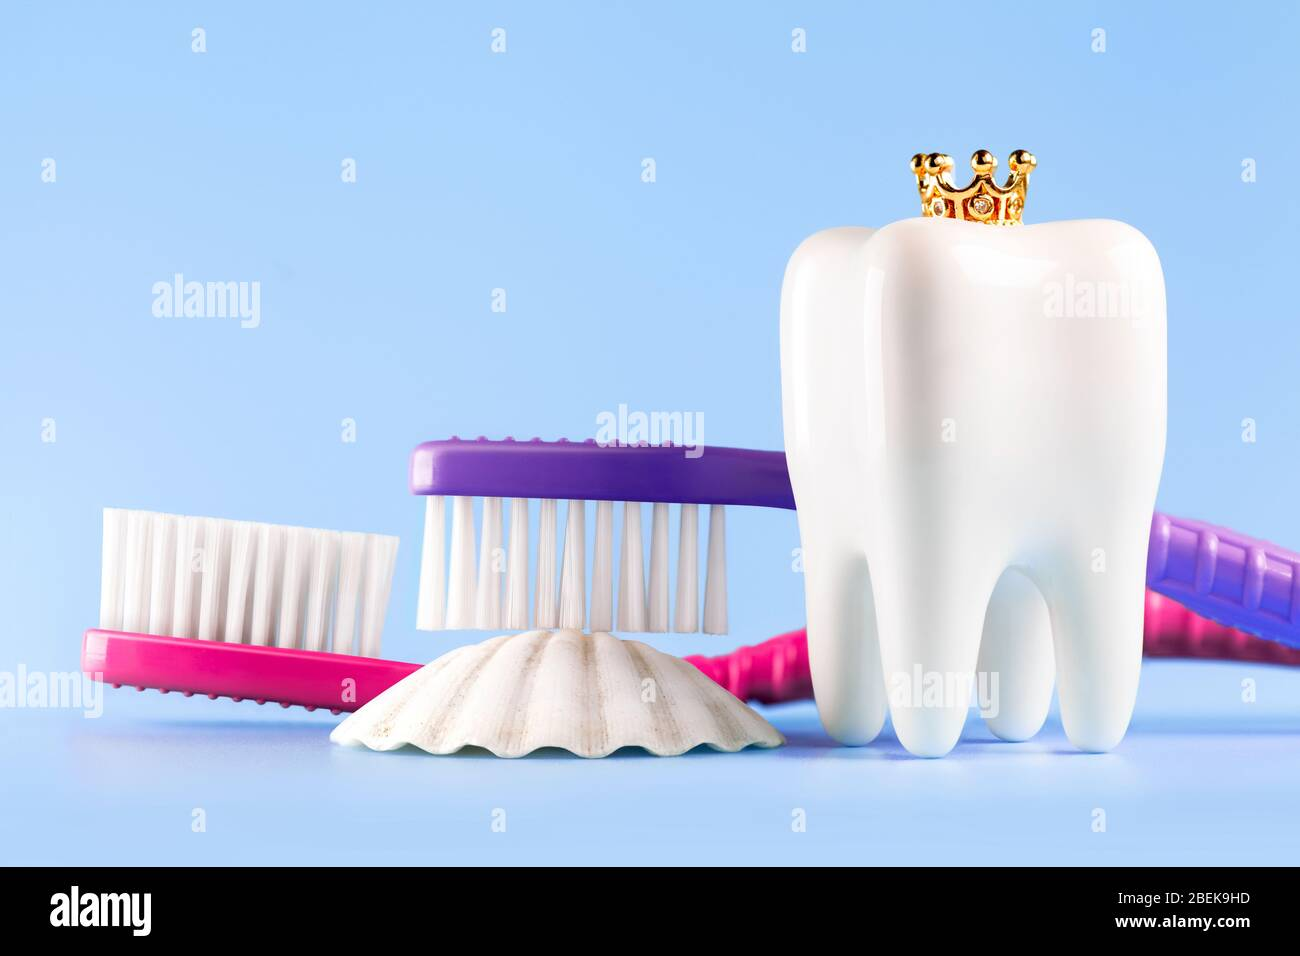 Dental Model And Toothbrushs On Blue Background Concept Image Of Dental Background Seashell Crown Dental Hygiene Banner With Copyspace Stock Photo 353237177 Alamy